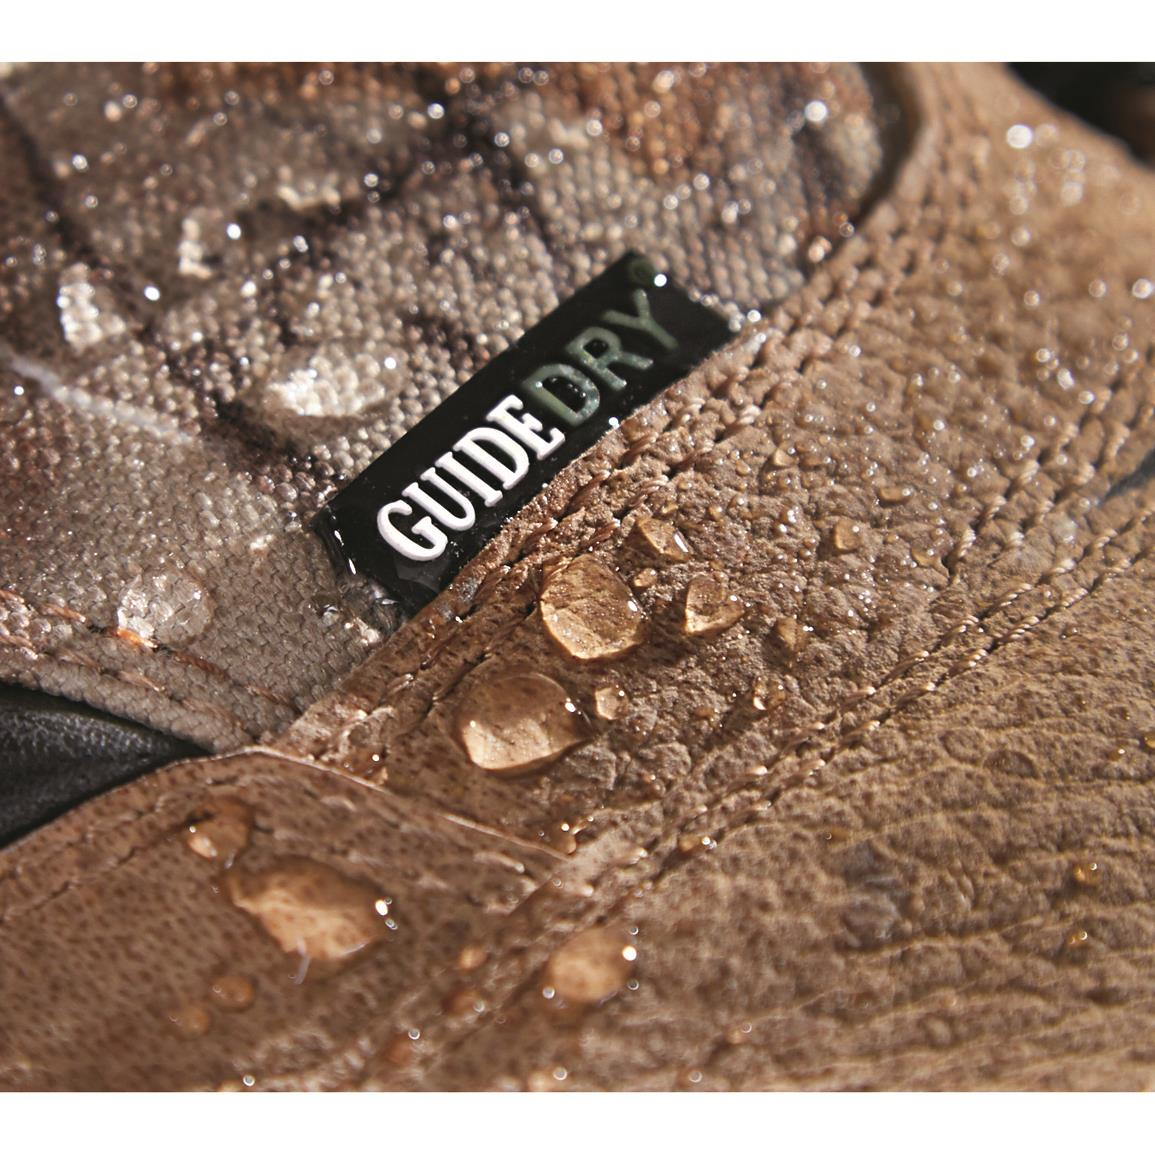 Guide Dry® technology for 100% waterproof performance